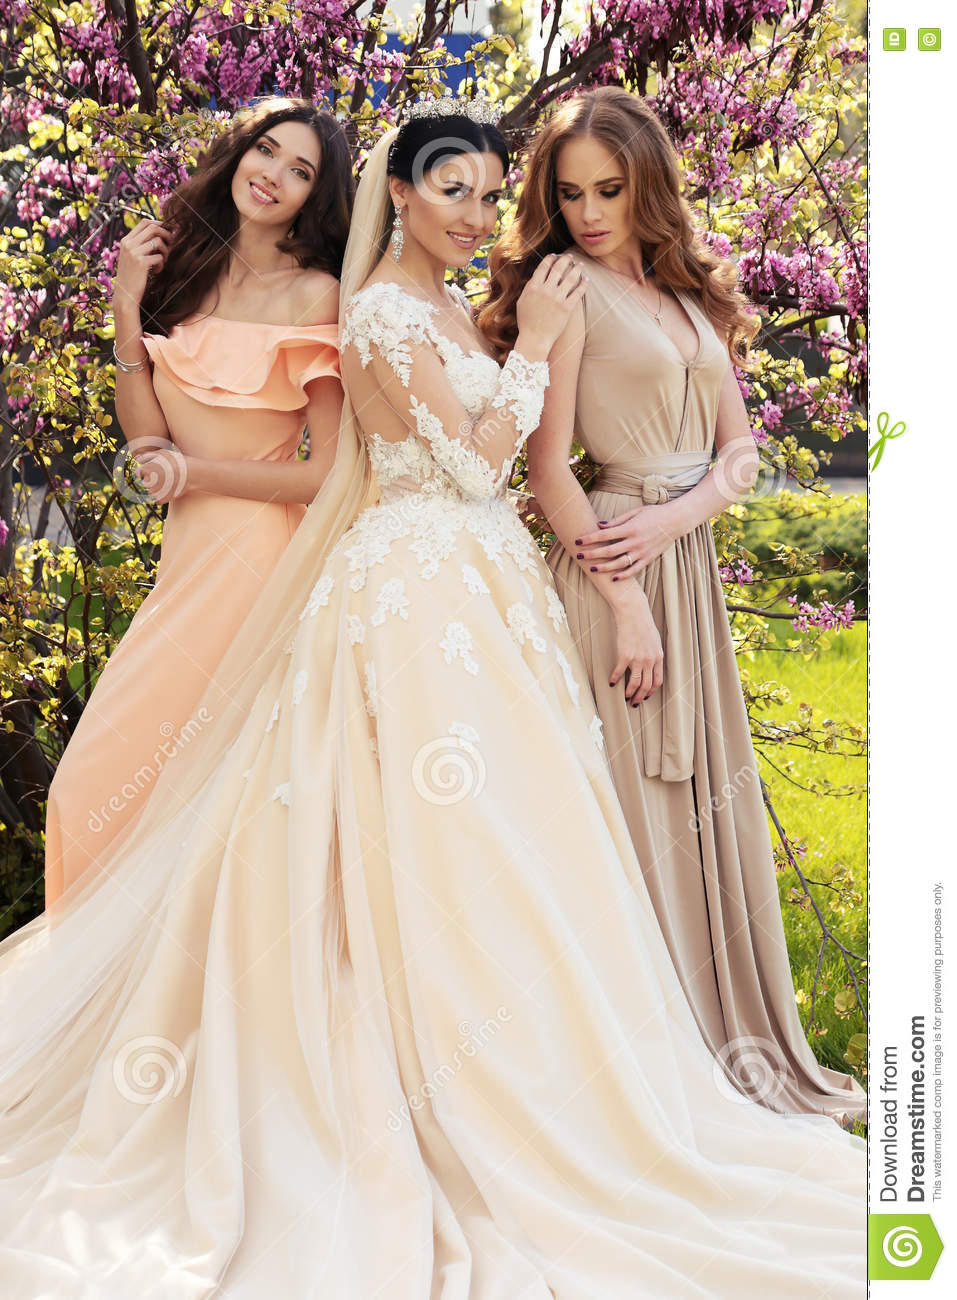 Gorgeous Bride In Luxurious Wedding Dress, Posing With Beautiful ...